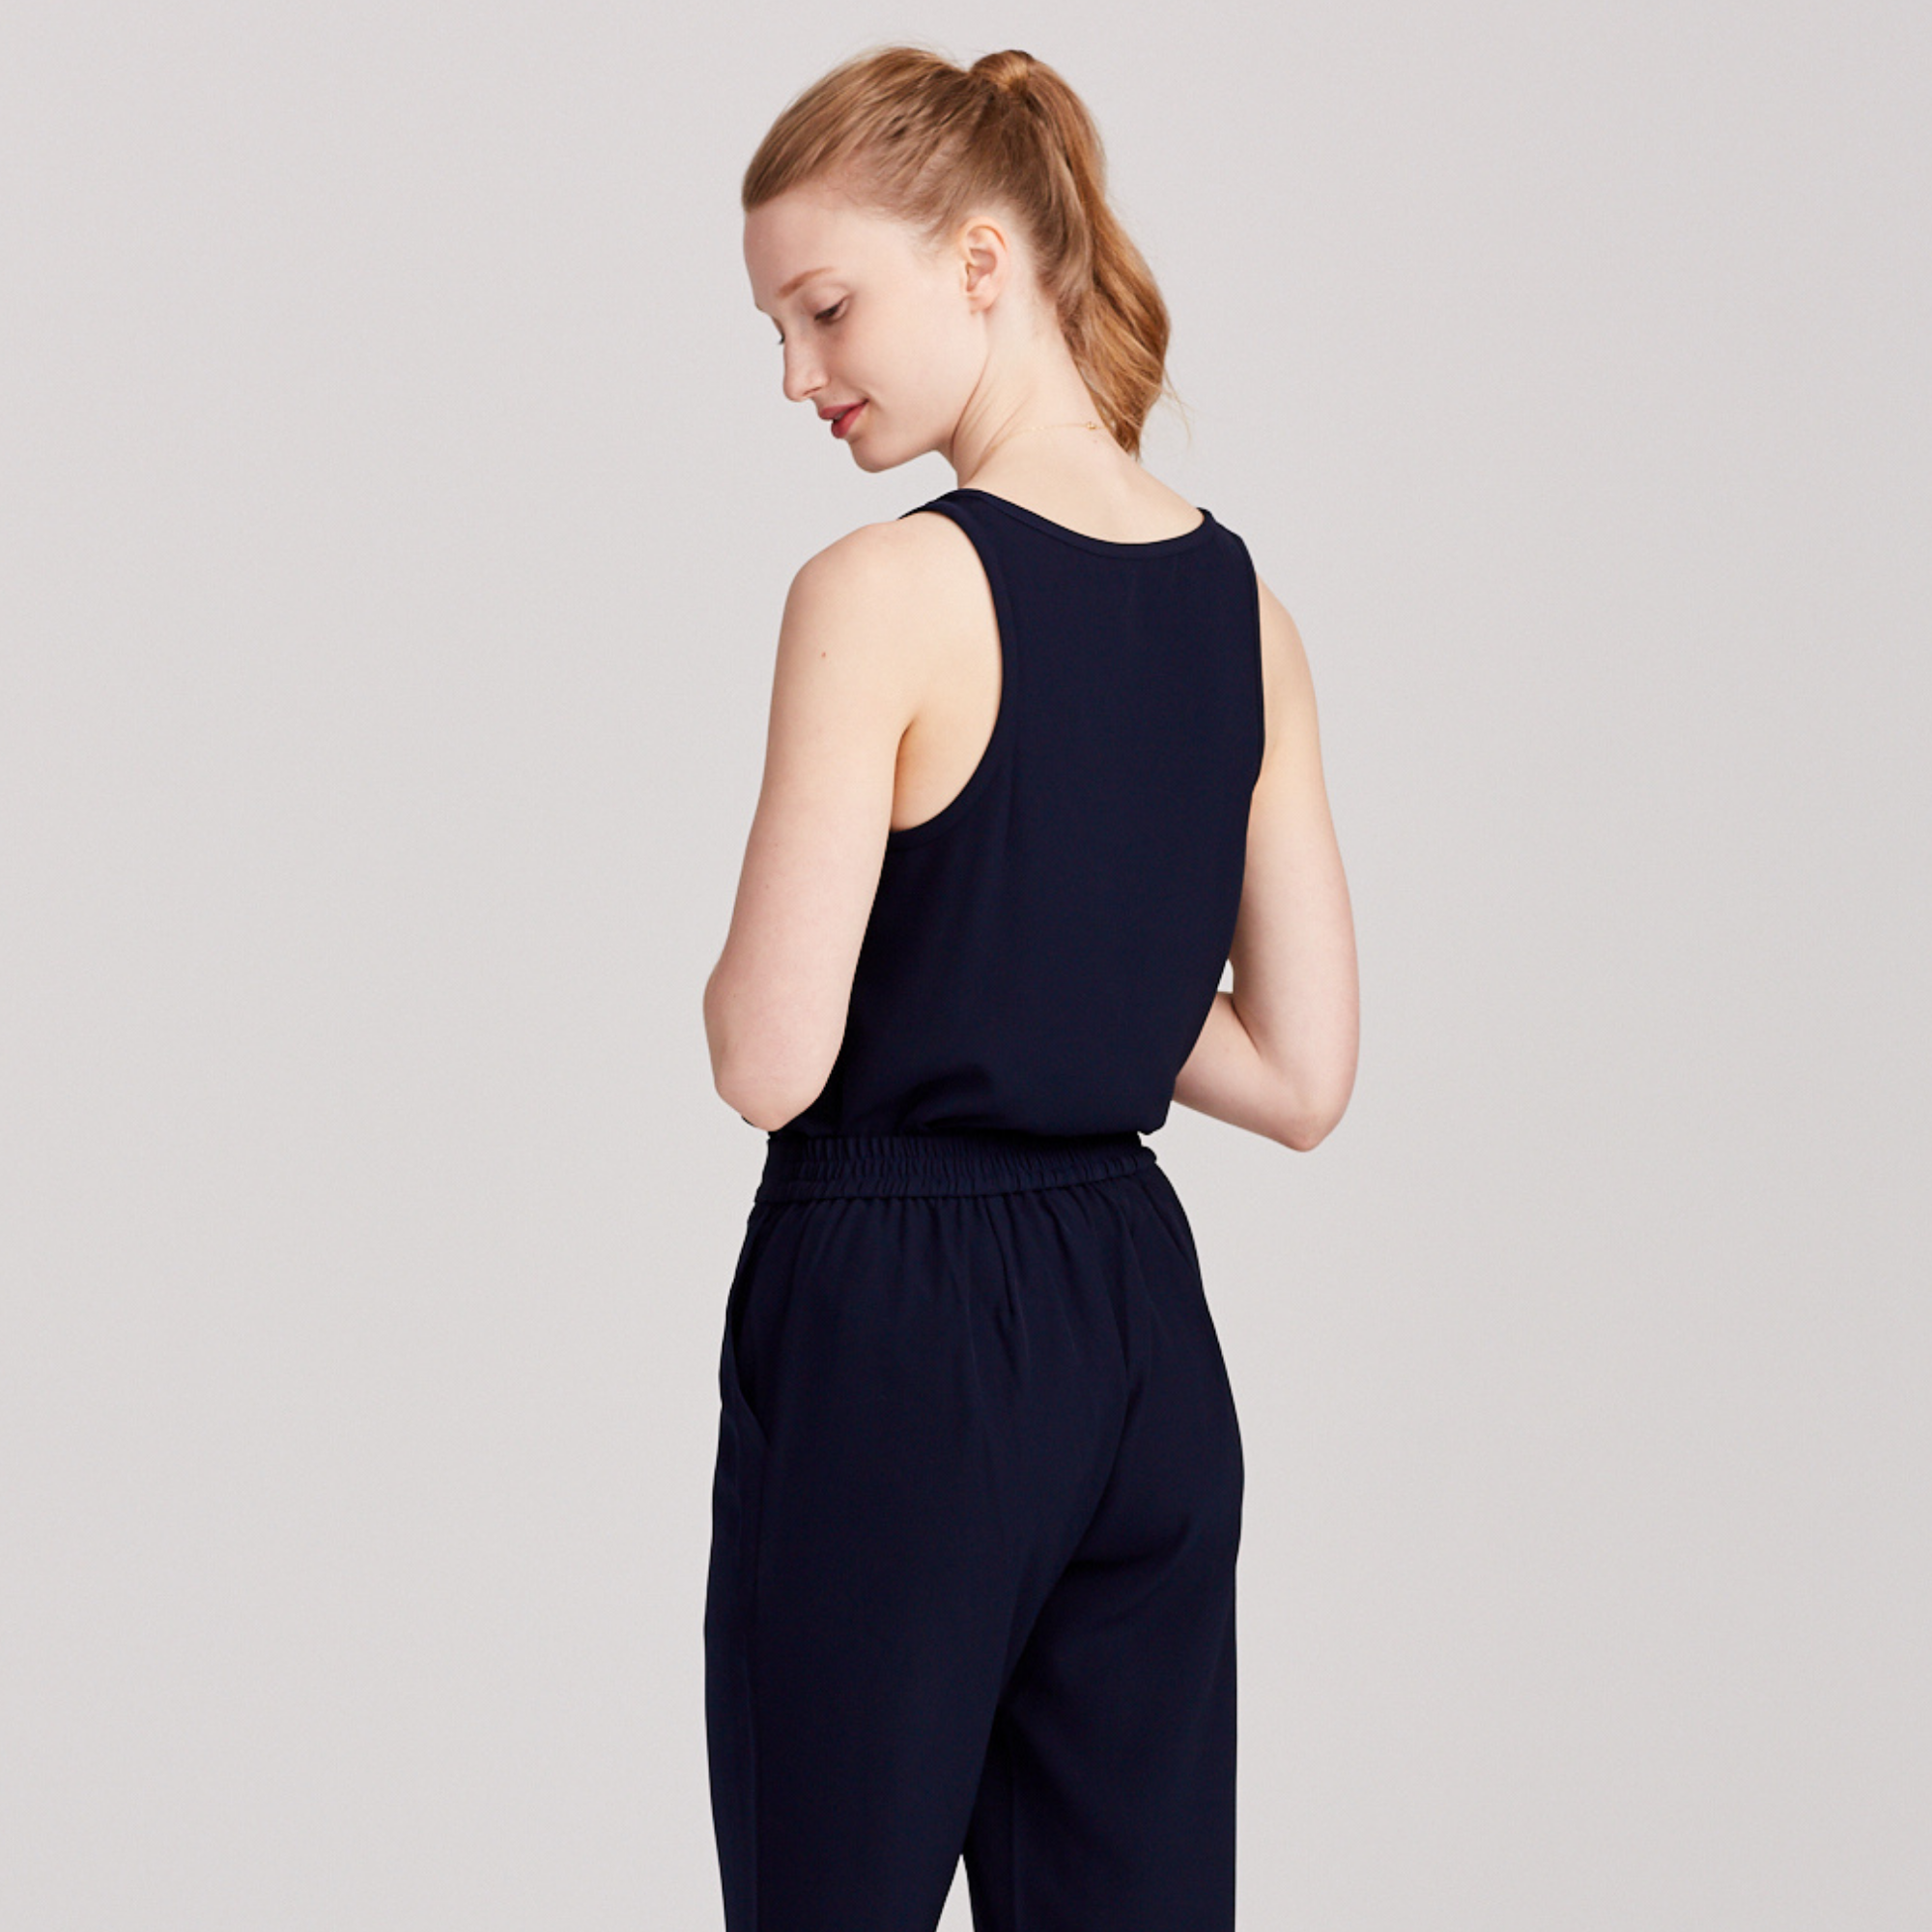 THE ALL-DAY PANT | NAVY - SALE